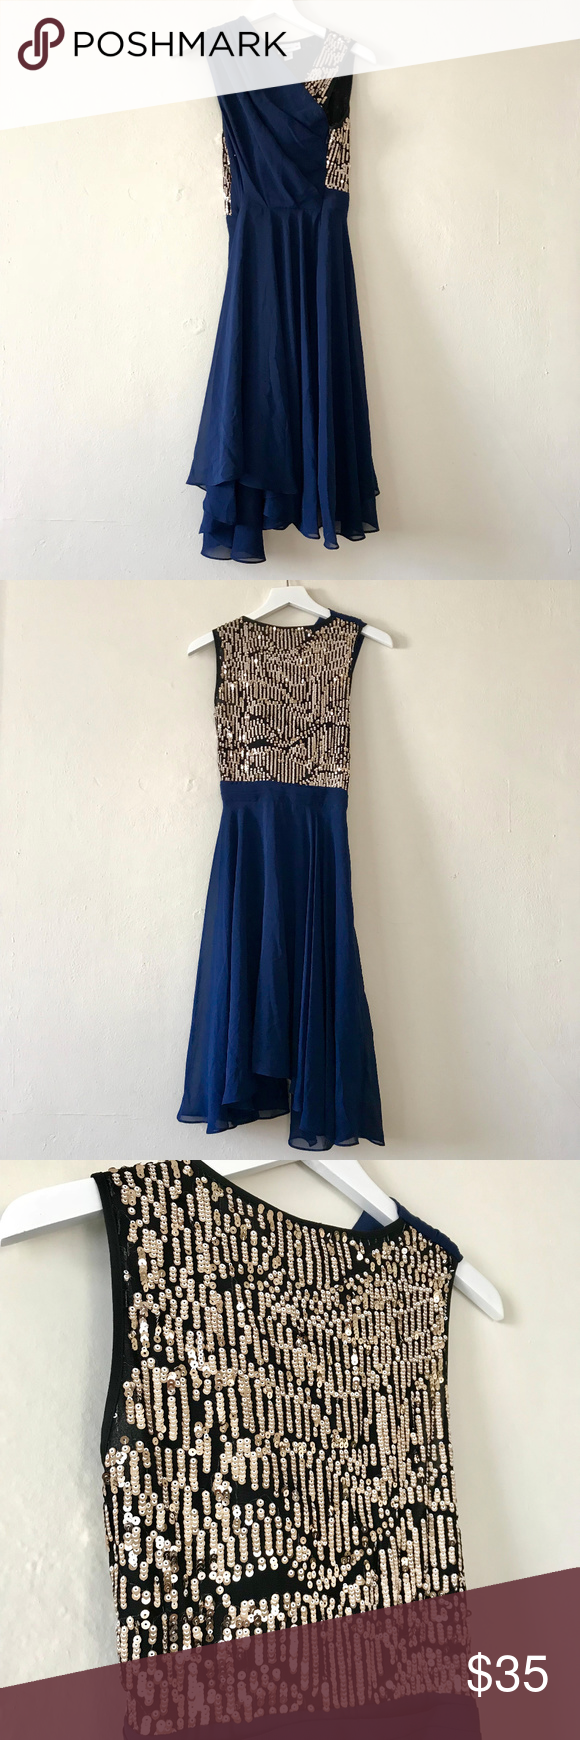 e1f42ebf 3.1 Phillip Lim for Target Navy Sequin Dress 3.1 Phillip Lim for Target  Collaboration Sequin Dress in Navy. Worn once for a wedding.